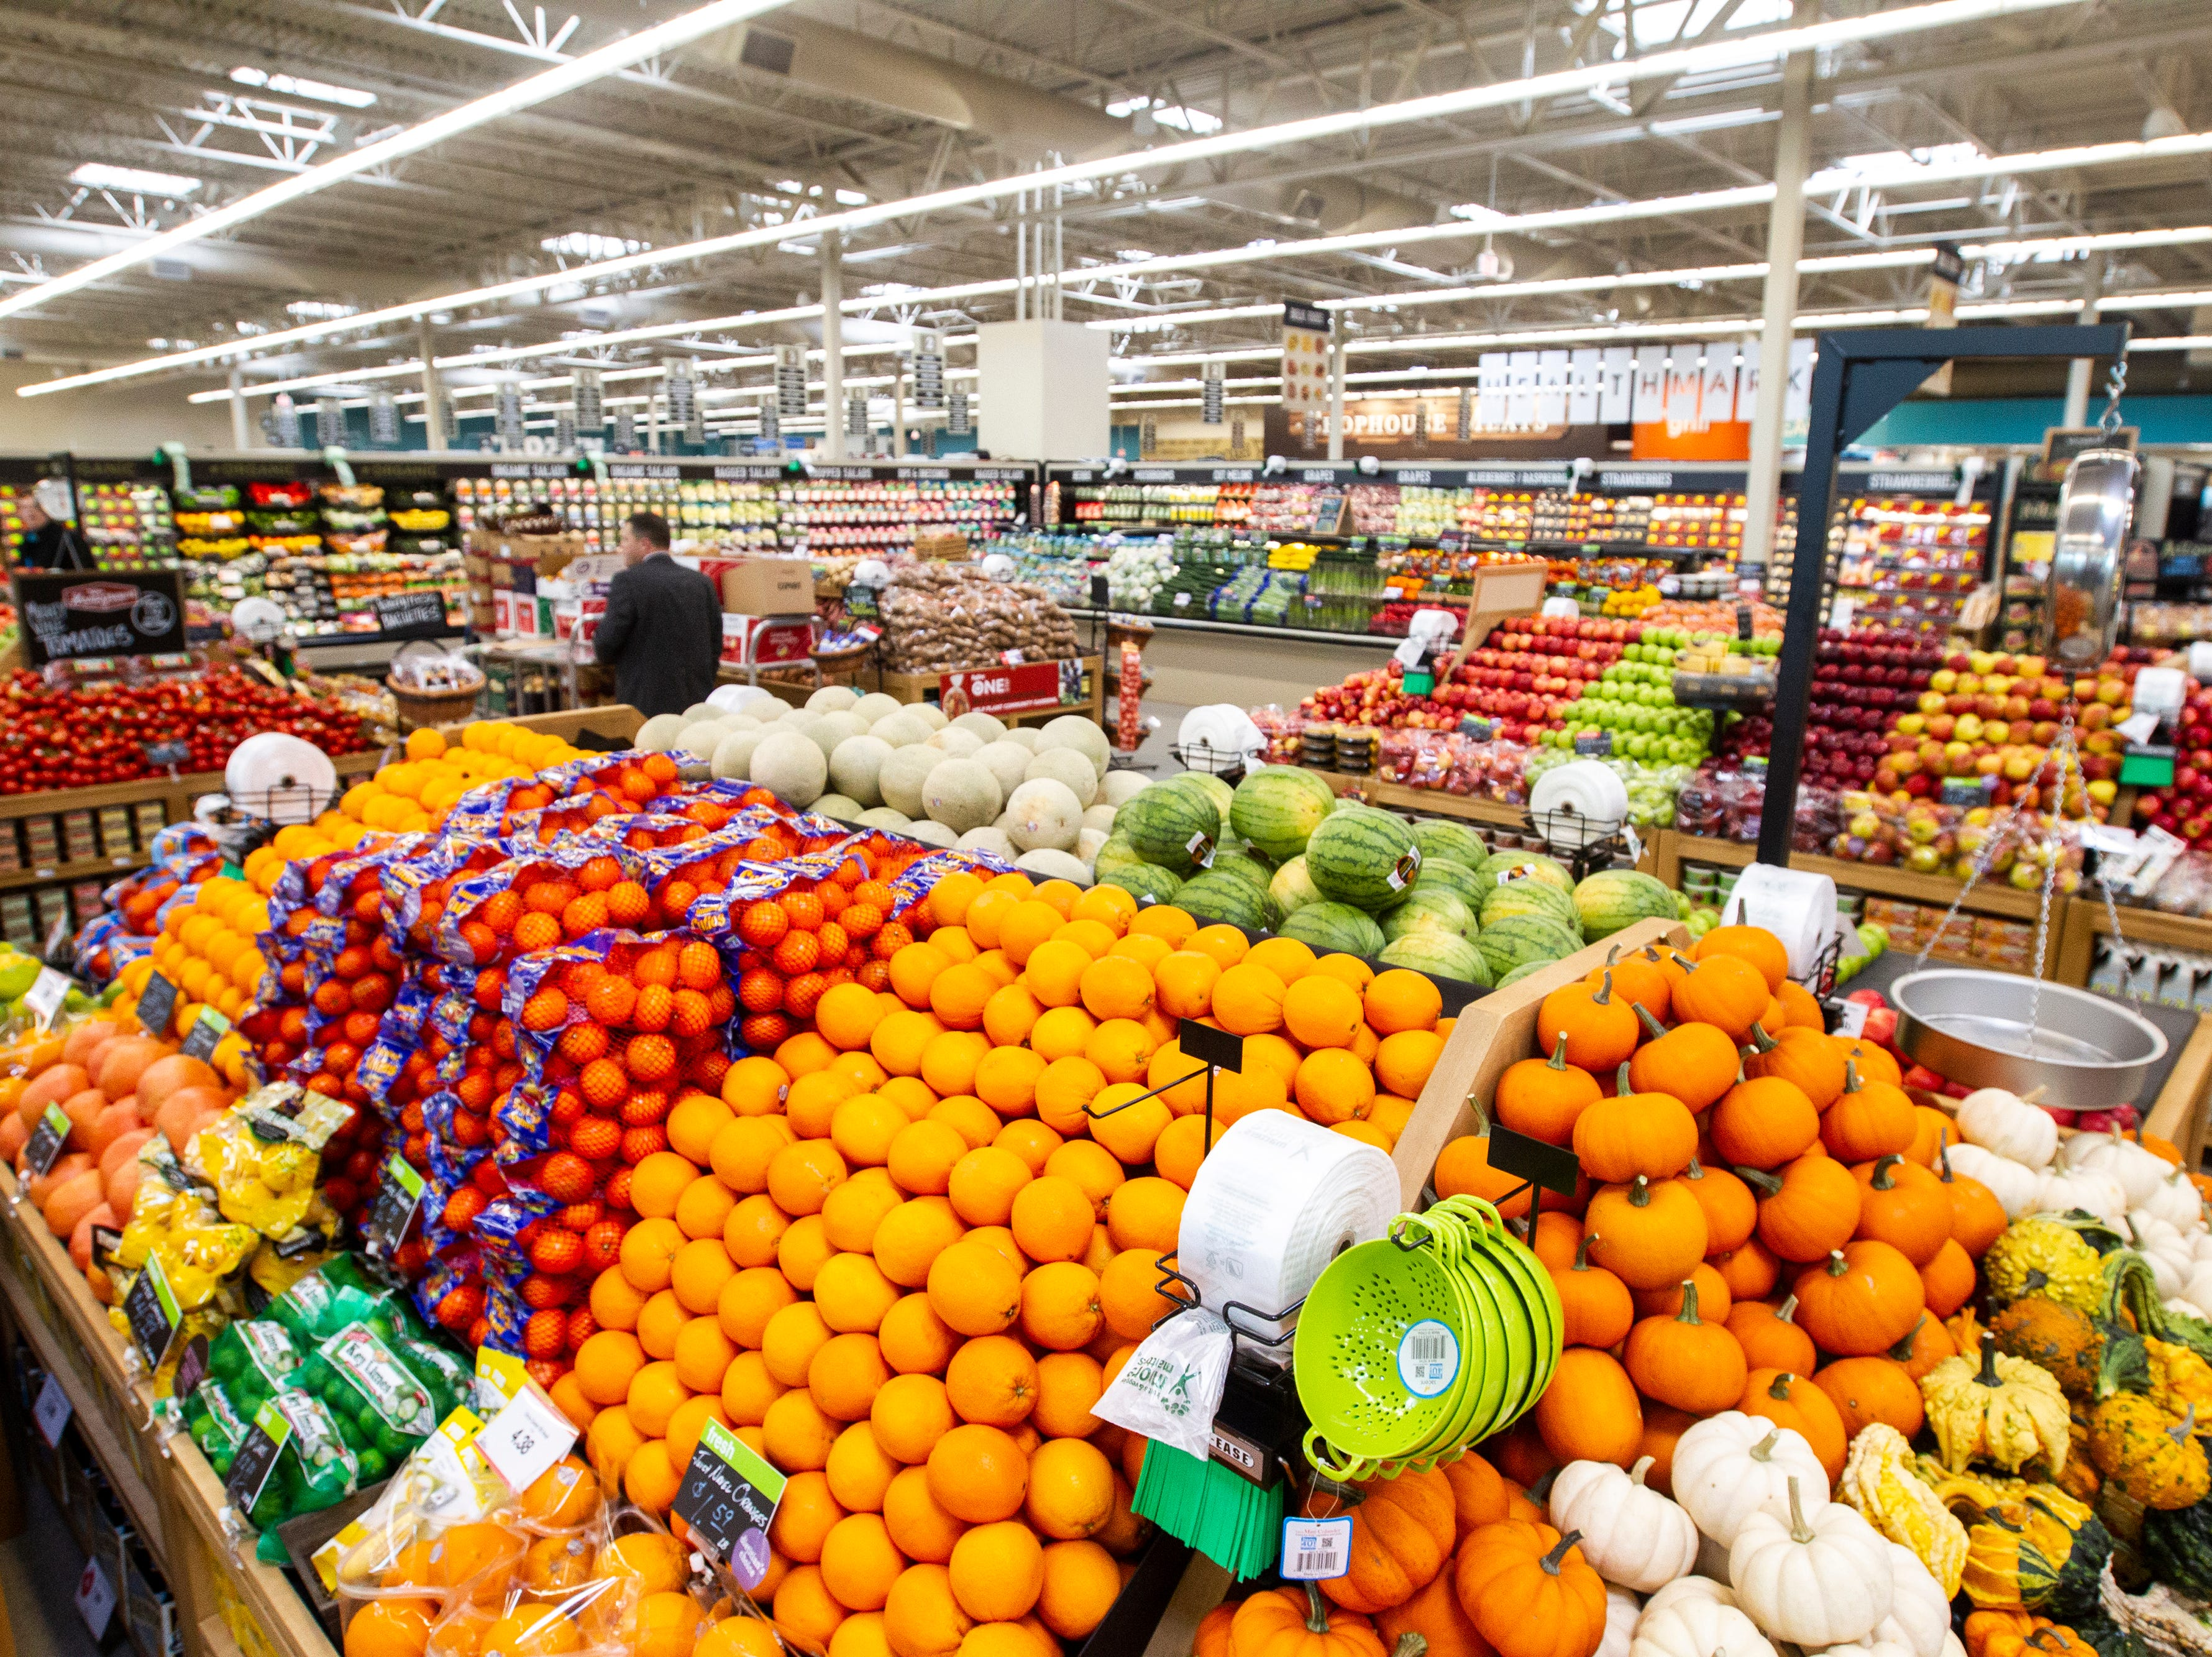 Fruits and vegetables are displayed at a new Hy-Vee on Monday, Oct. 15, 2018, along Crosspark Road in Coralville, Iowa.